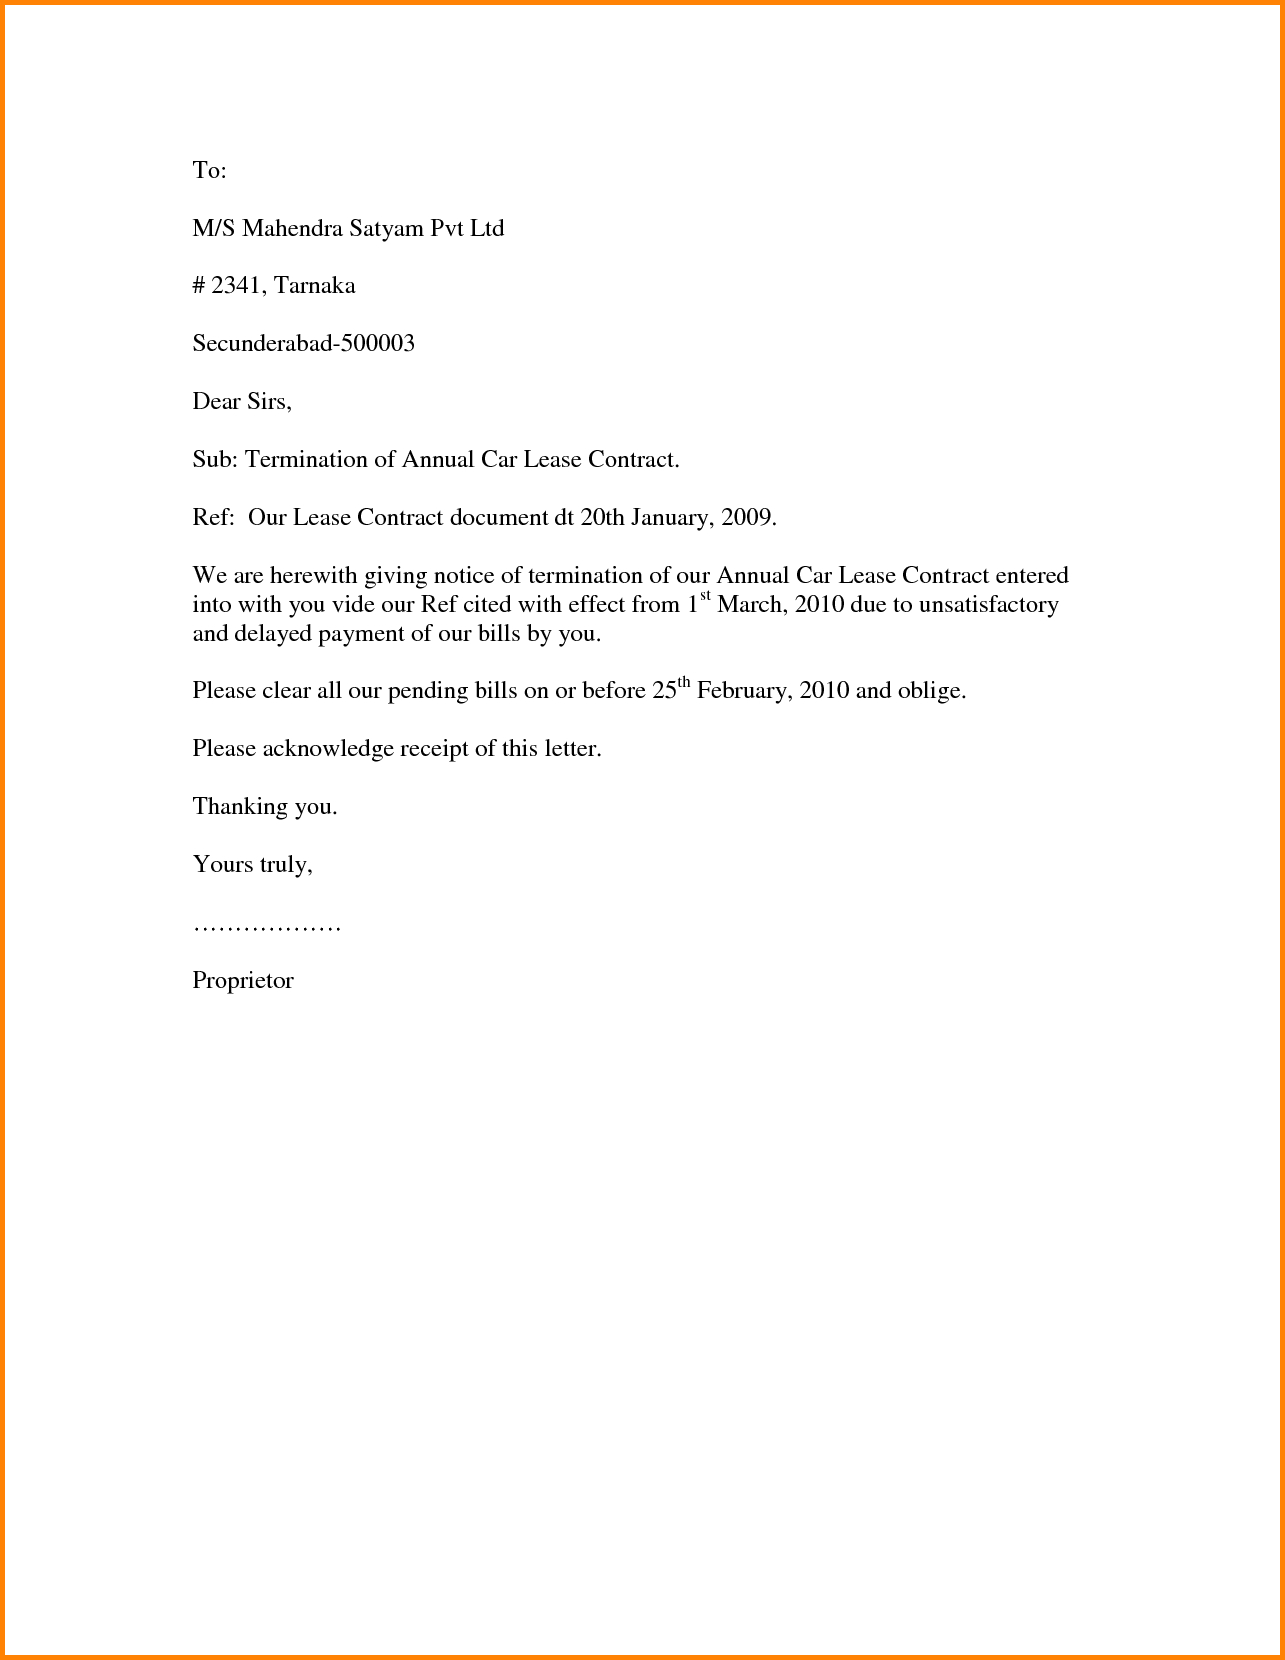 Termination Letter Template California - How to End Letters How to End A Resignation Letter Fancy Resume How